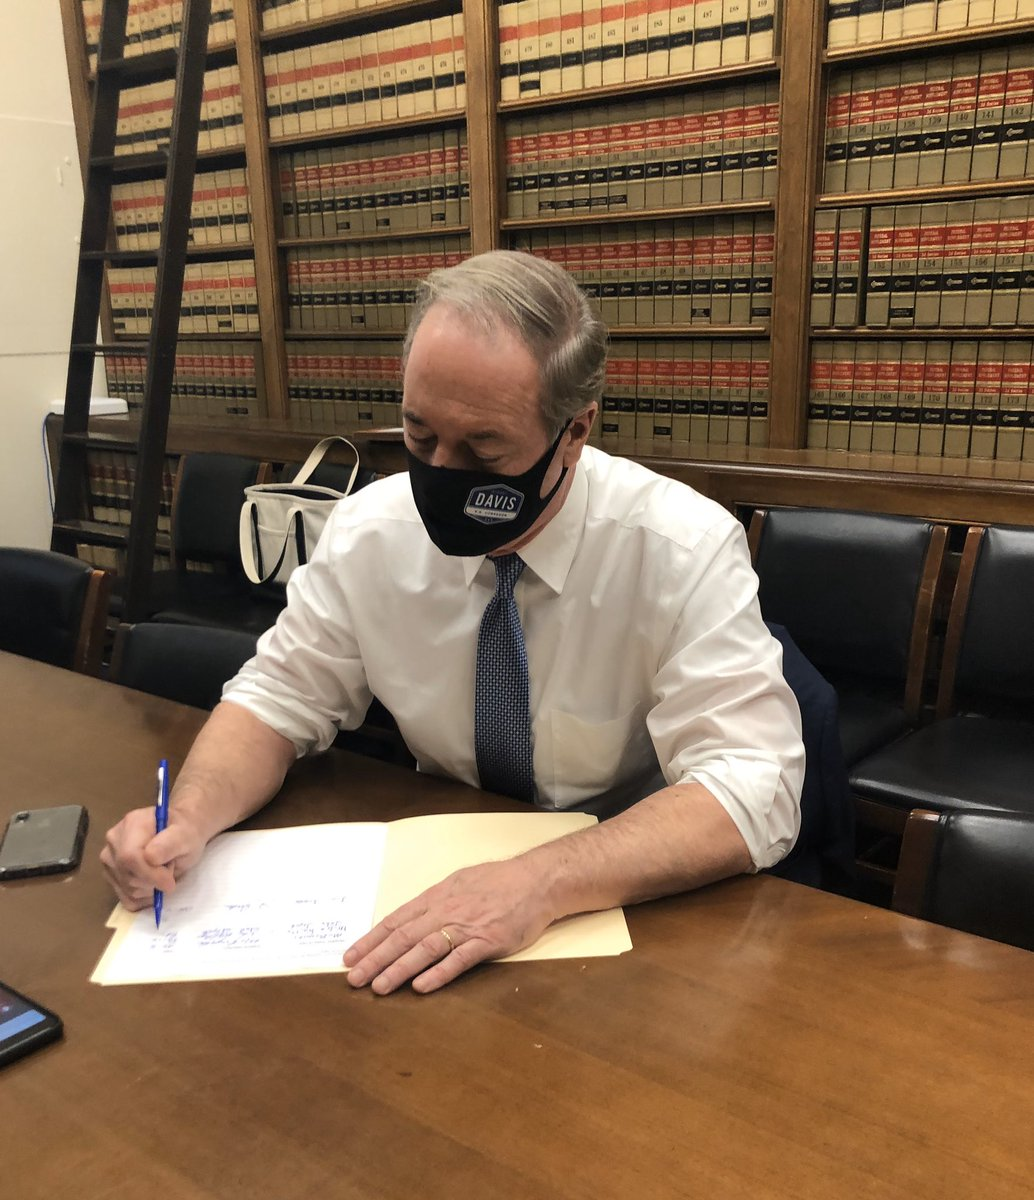 Today I signed the official objection to the Pennsylvania electors ahead of tomorrow's Electoral College certification vote.   We must fight for free and fair elections - and the rule of law.